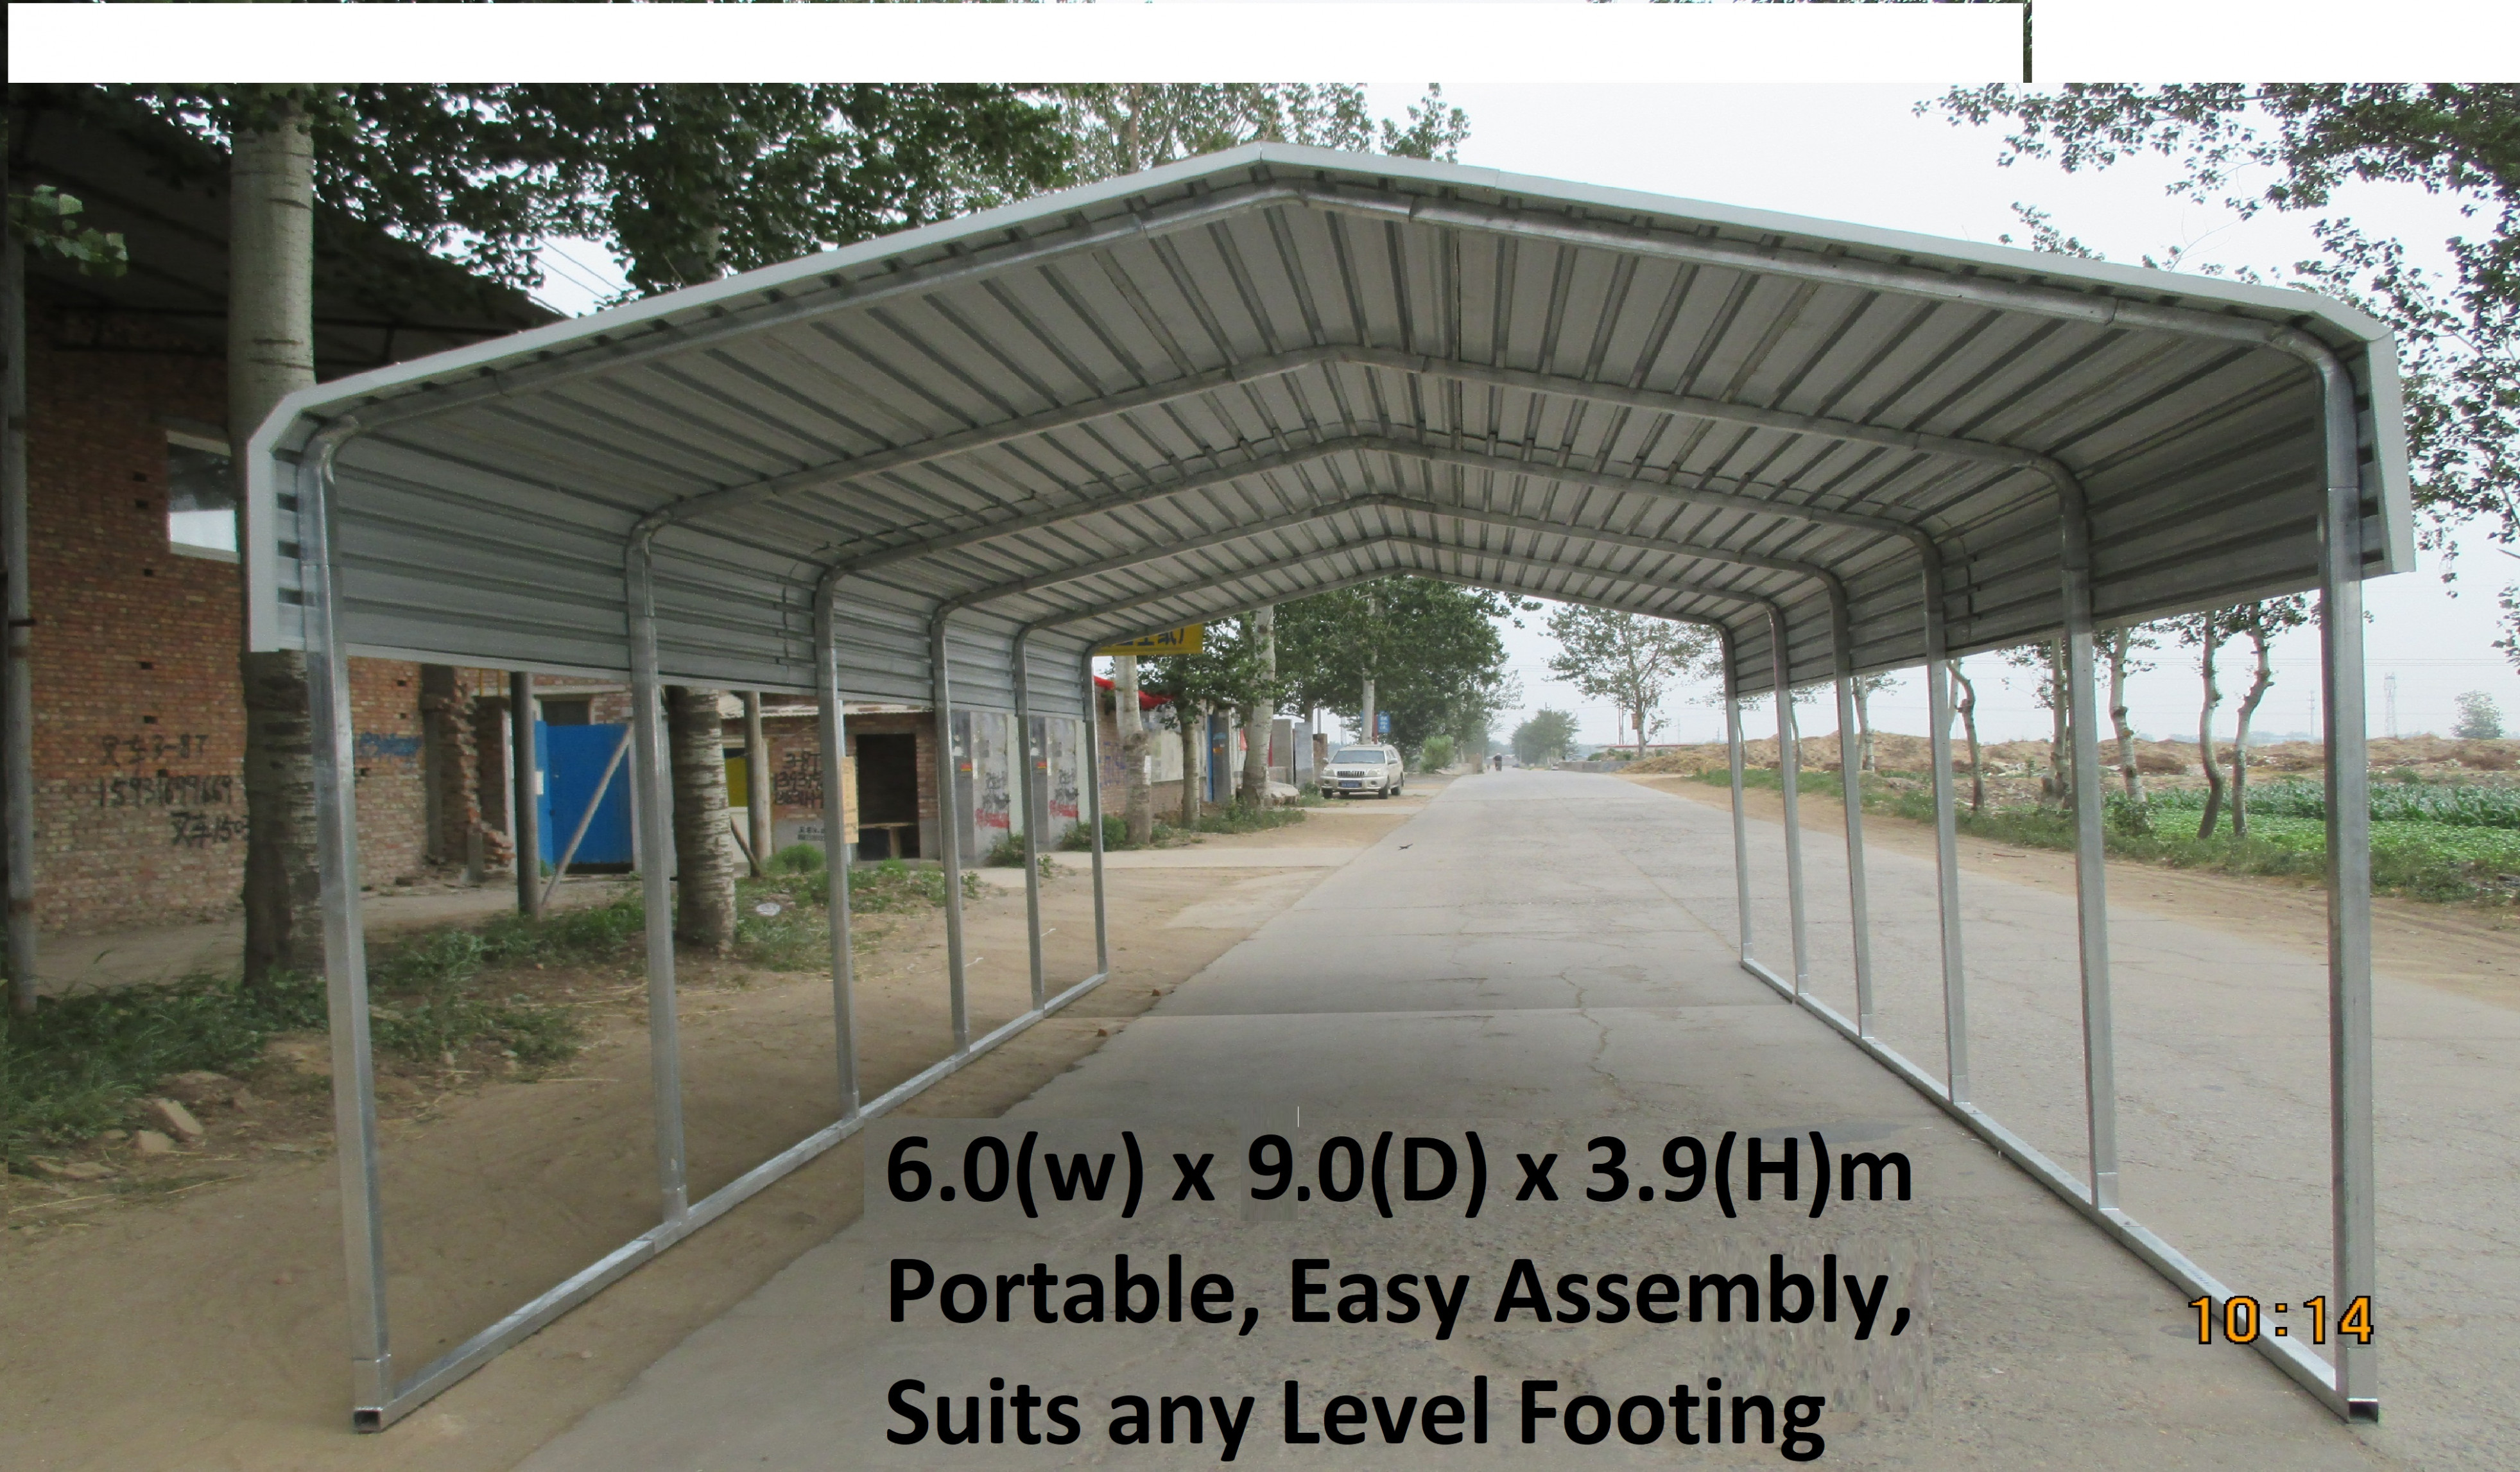 Portable Carport 13x13m Wrapping Roof Suitable For Any Level Floor! Carport Tent Cover